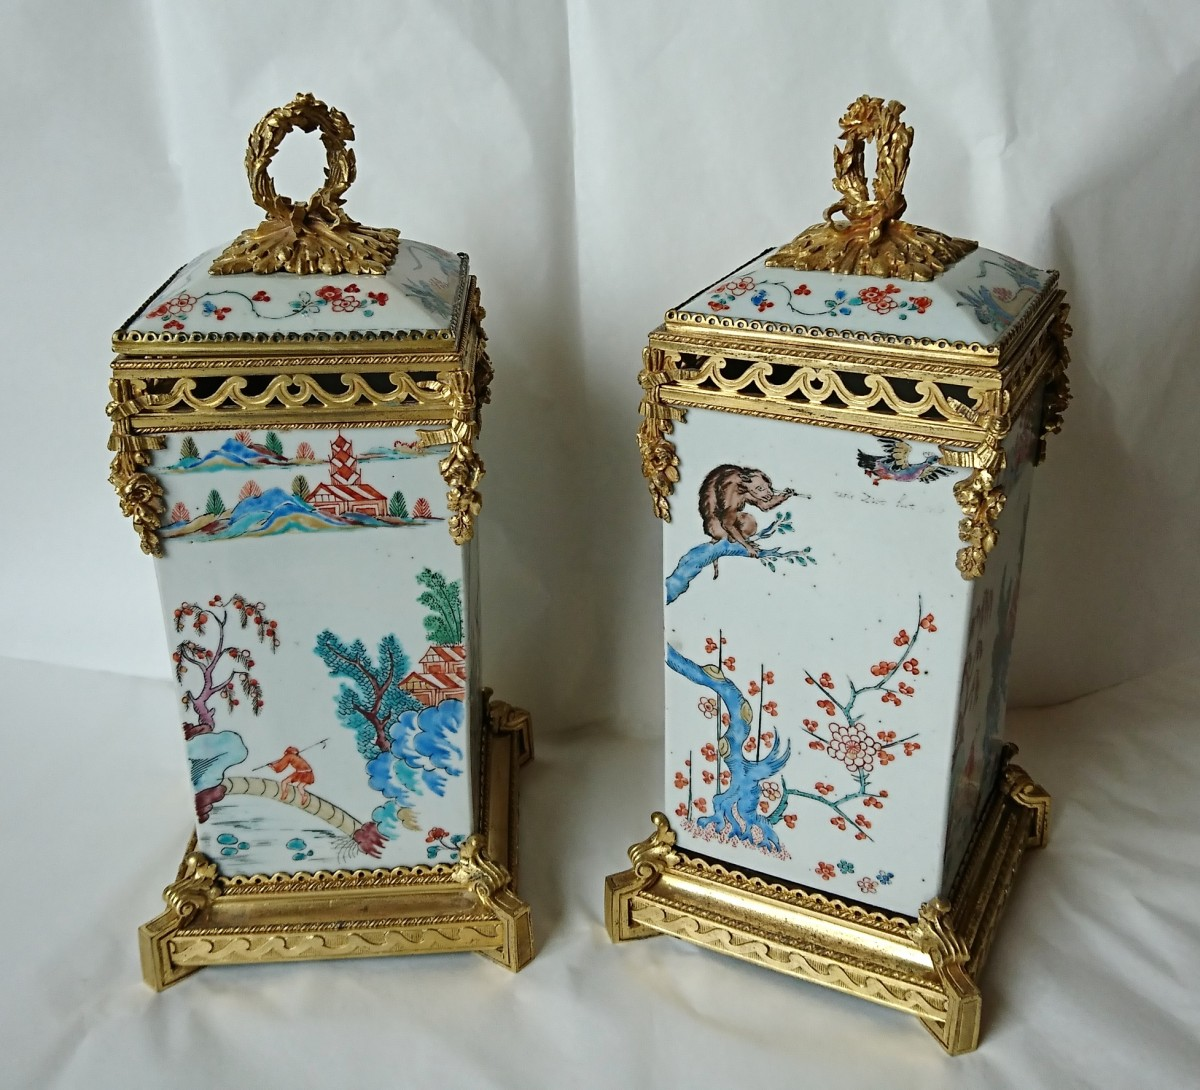 Pair of japanese vases c 1710 mounts signed lescalier de porcelain faience pair of japanese vases c floridaeventfo Image collections